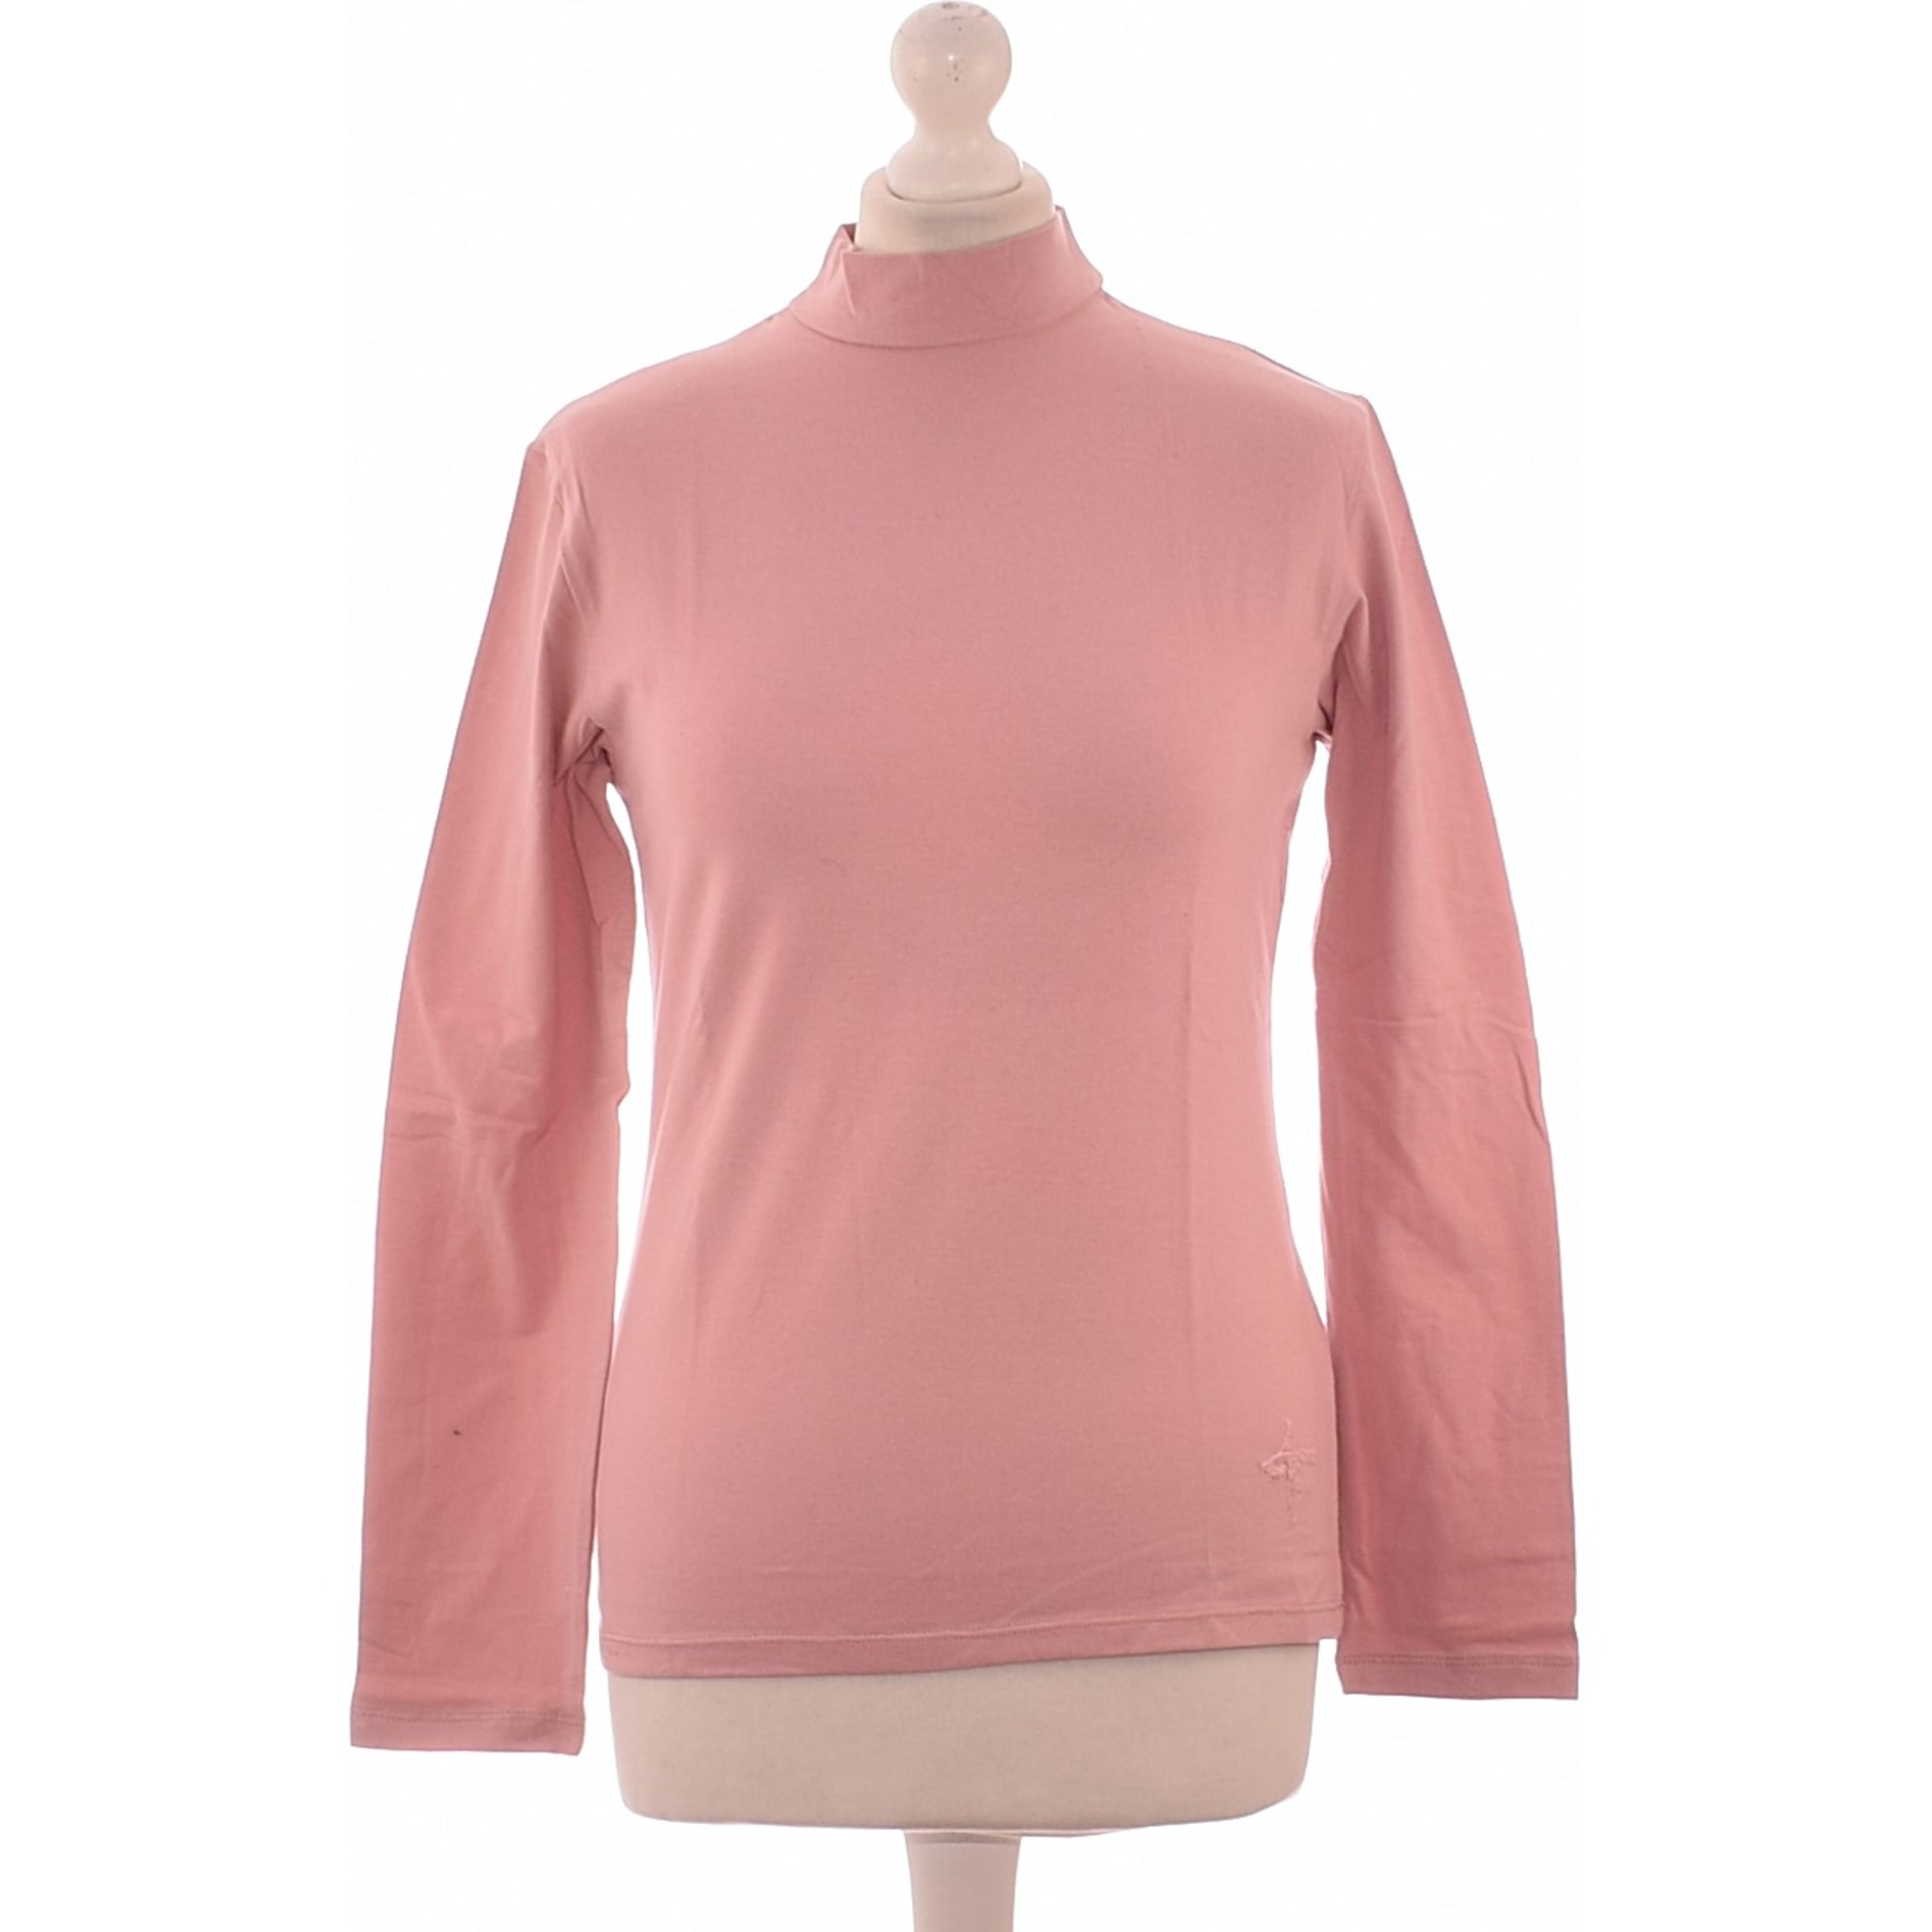 Top, T-shirt AVENTURES DES TOILES Pink, fuchsia, light pink